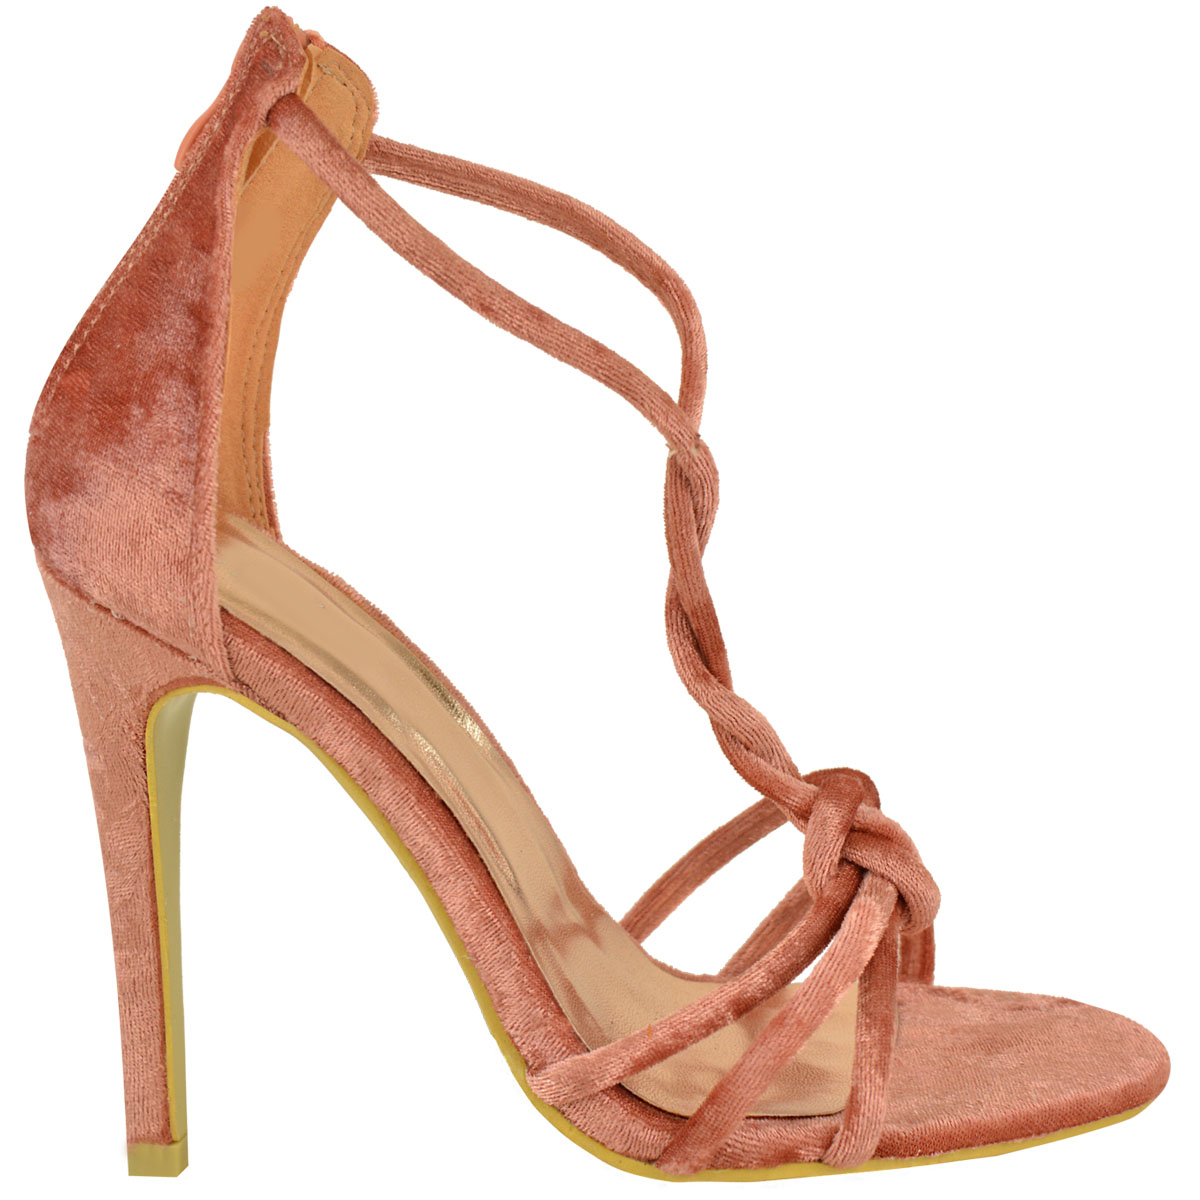 Womens Reduced Sale High Heel Sandals Ladies Peep Toe Ankle Strappy Party Shoes